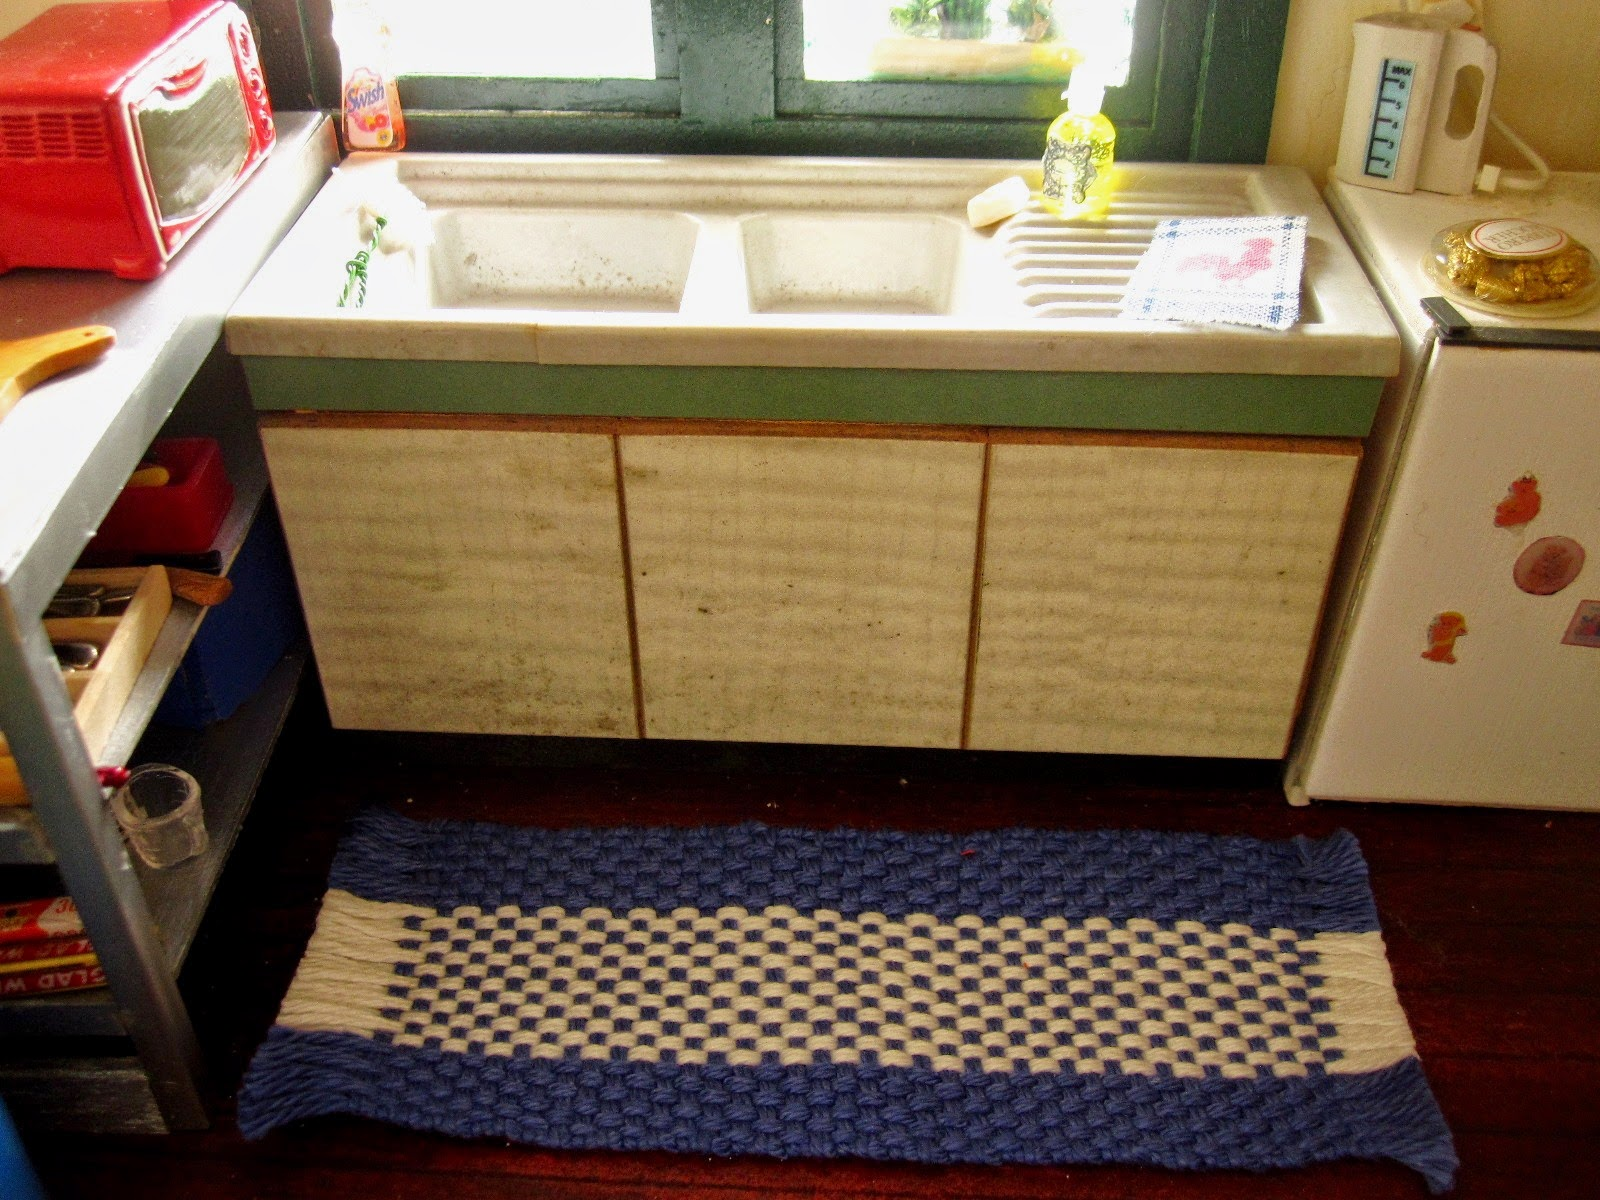 Modern dolls' house miniature kitchen sink unit.